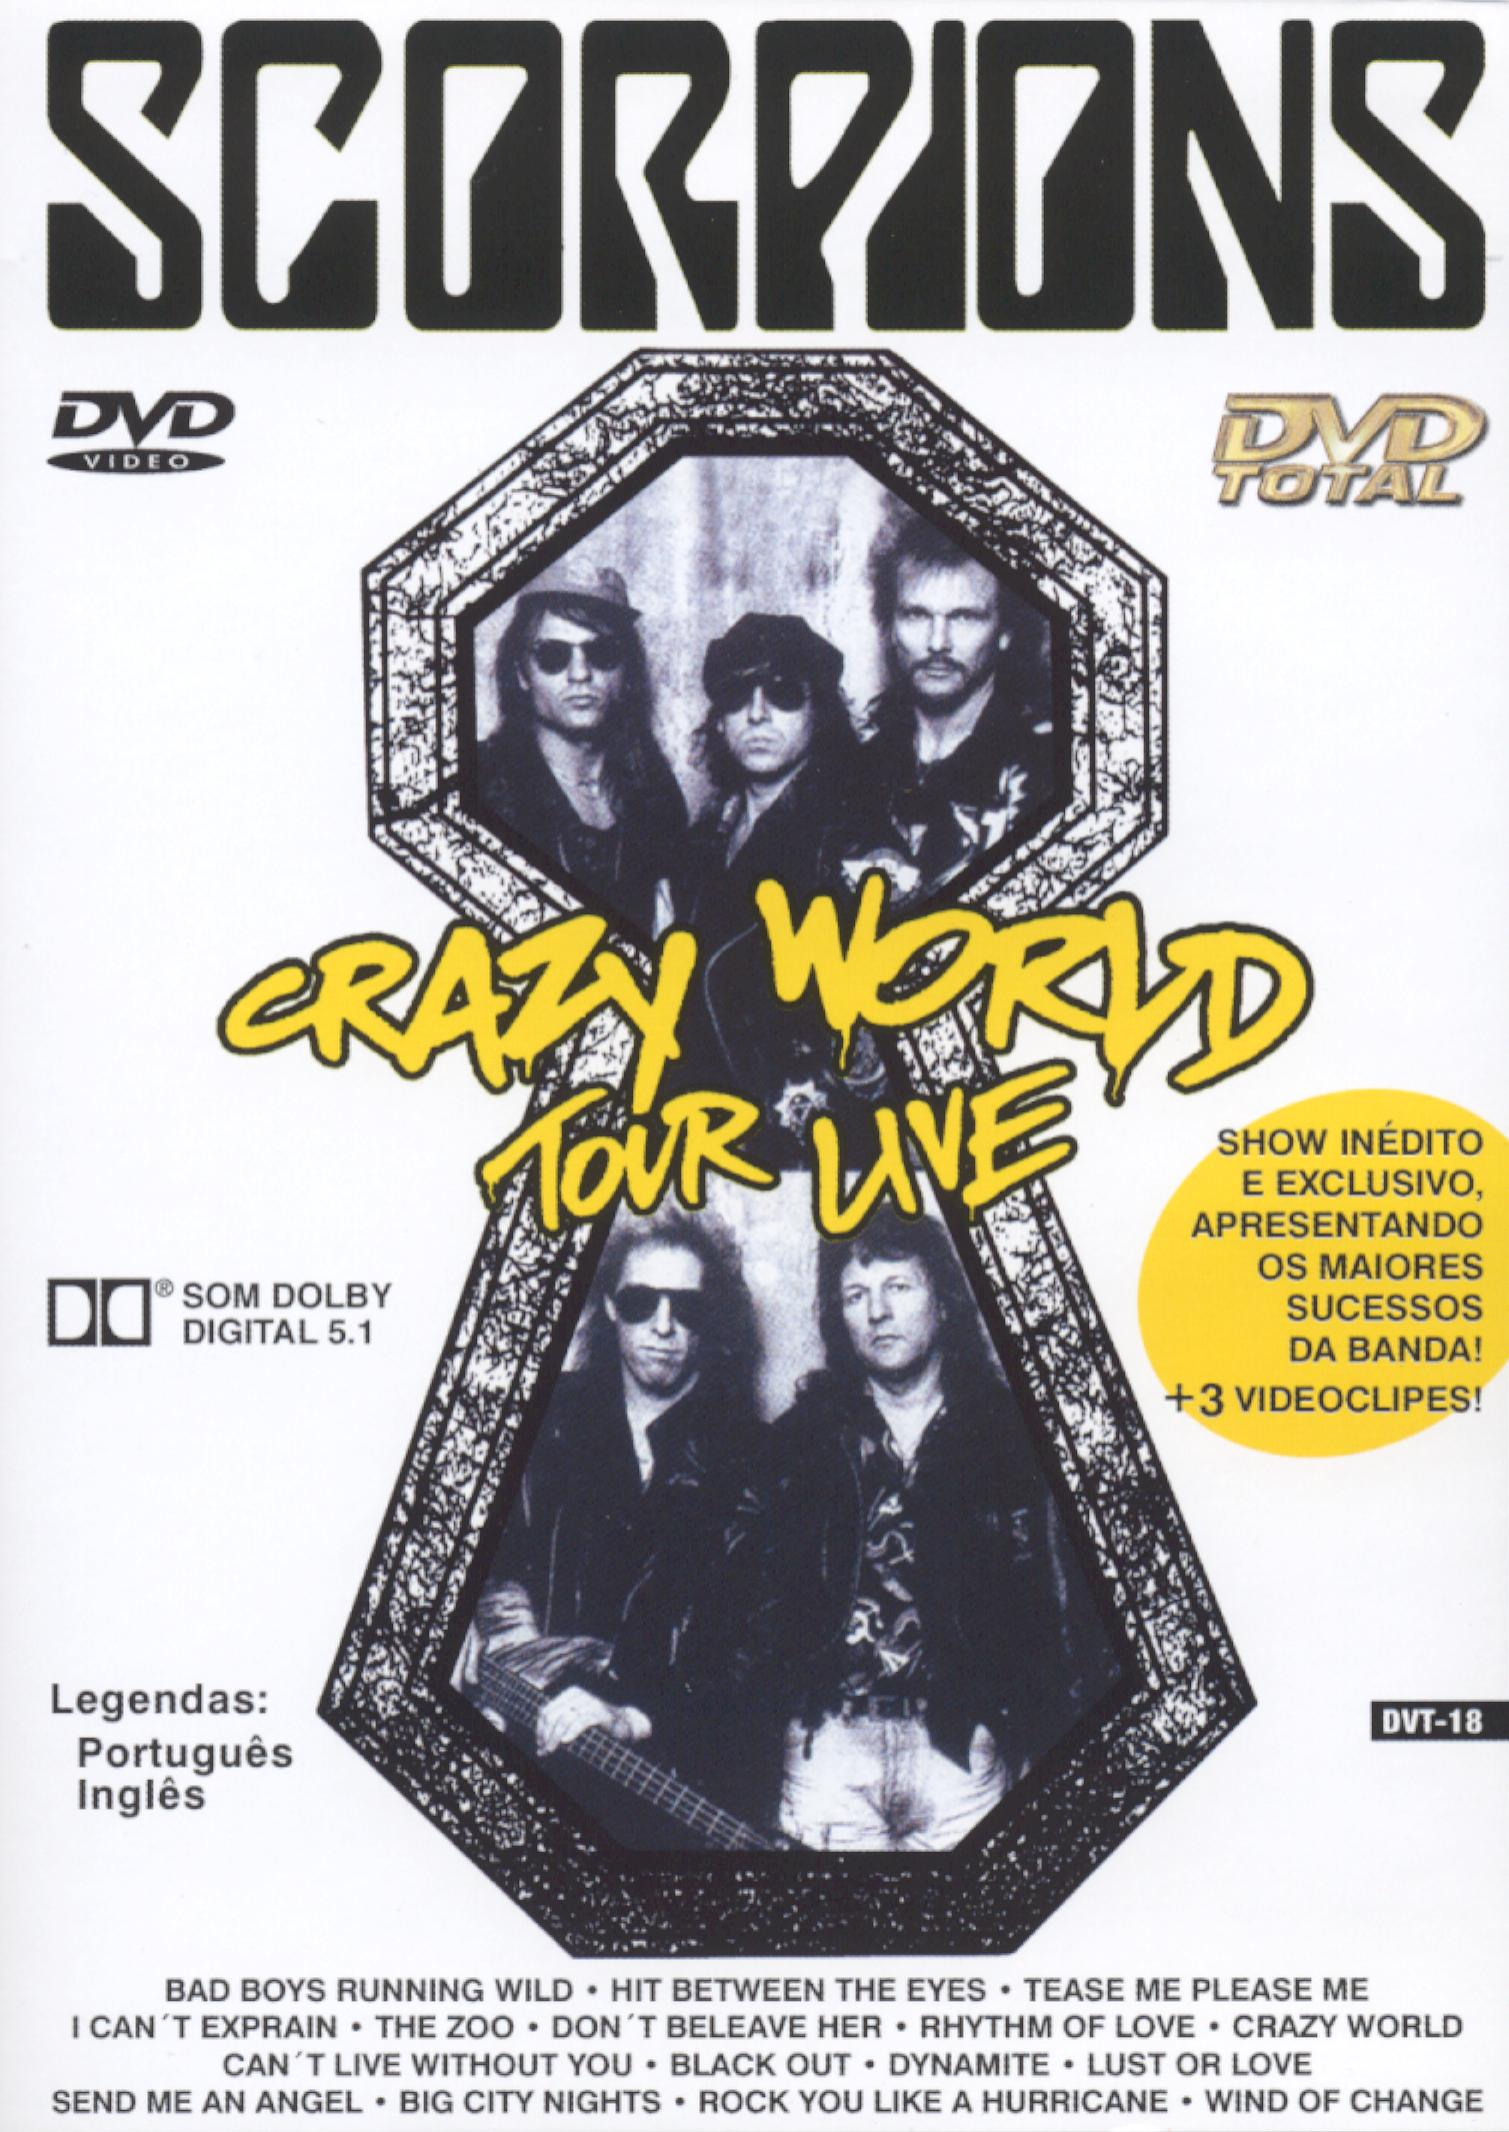 Scorpions: Crazy World Tour Live - Berlin 1991